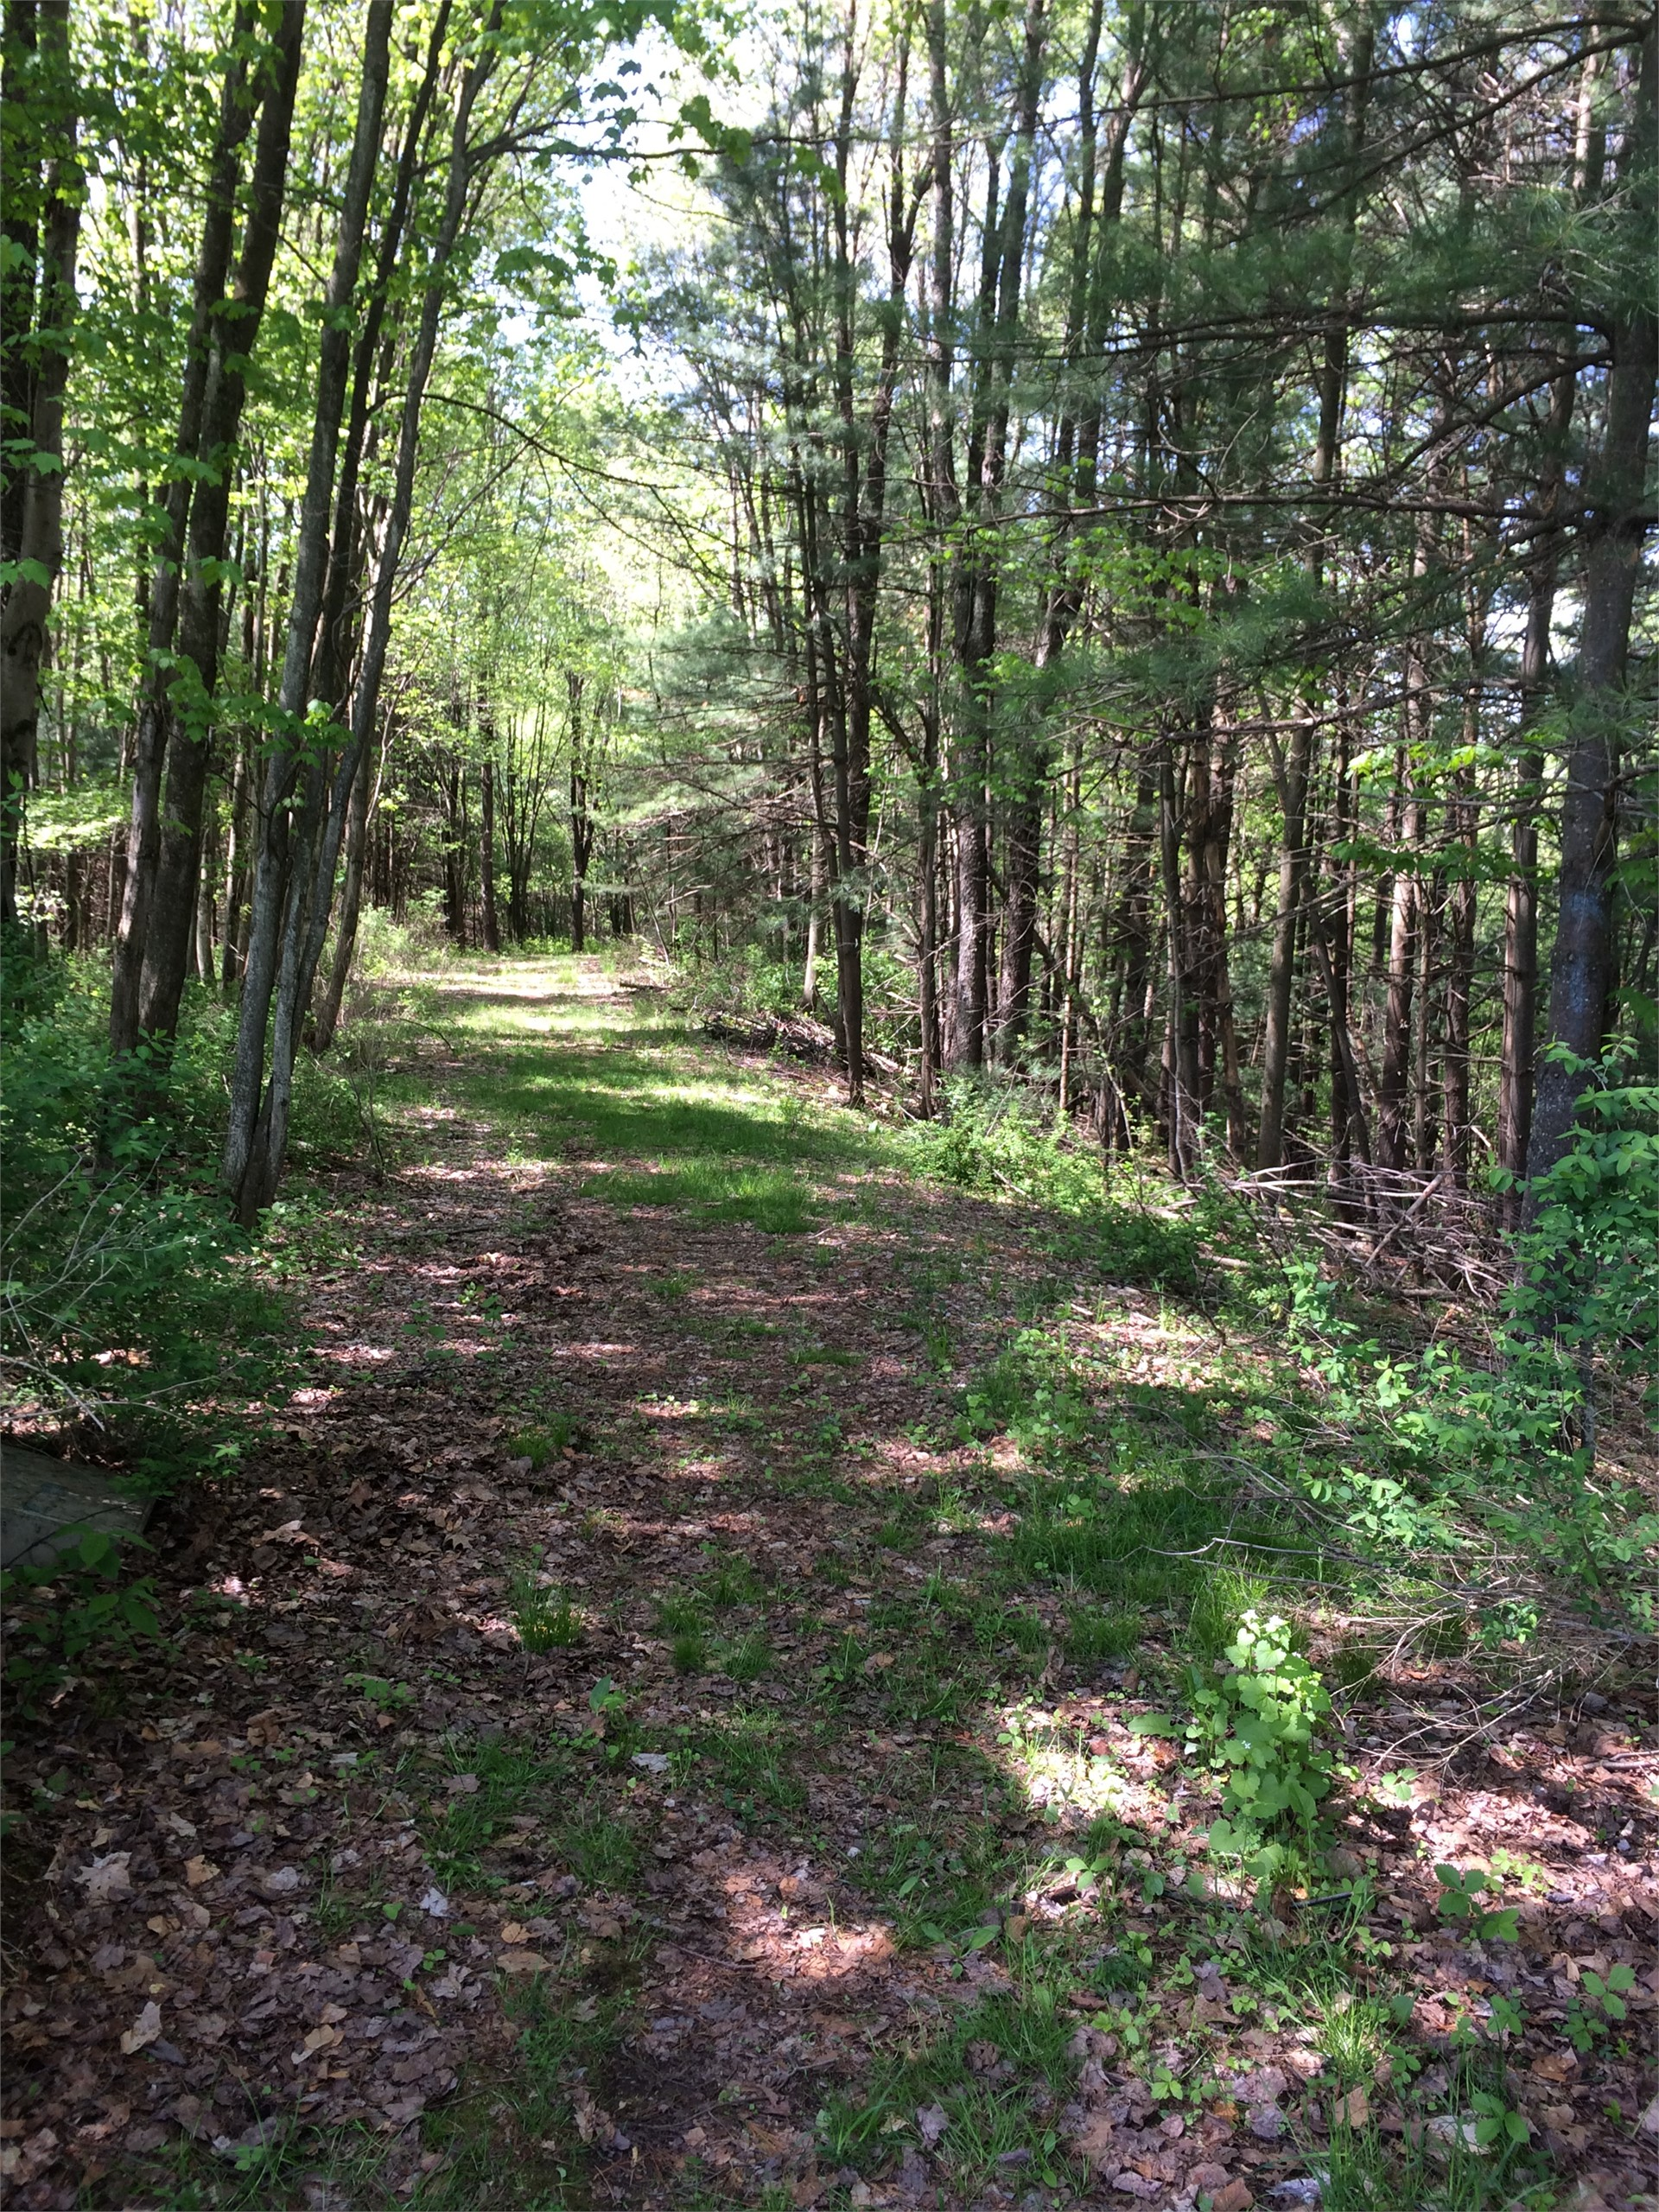 This is a photo of one of the nature trails.  There are a lot of trees that shade the path.  The gra